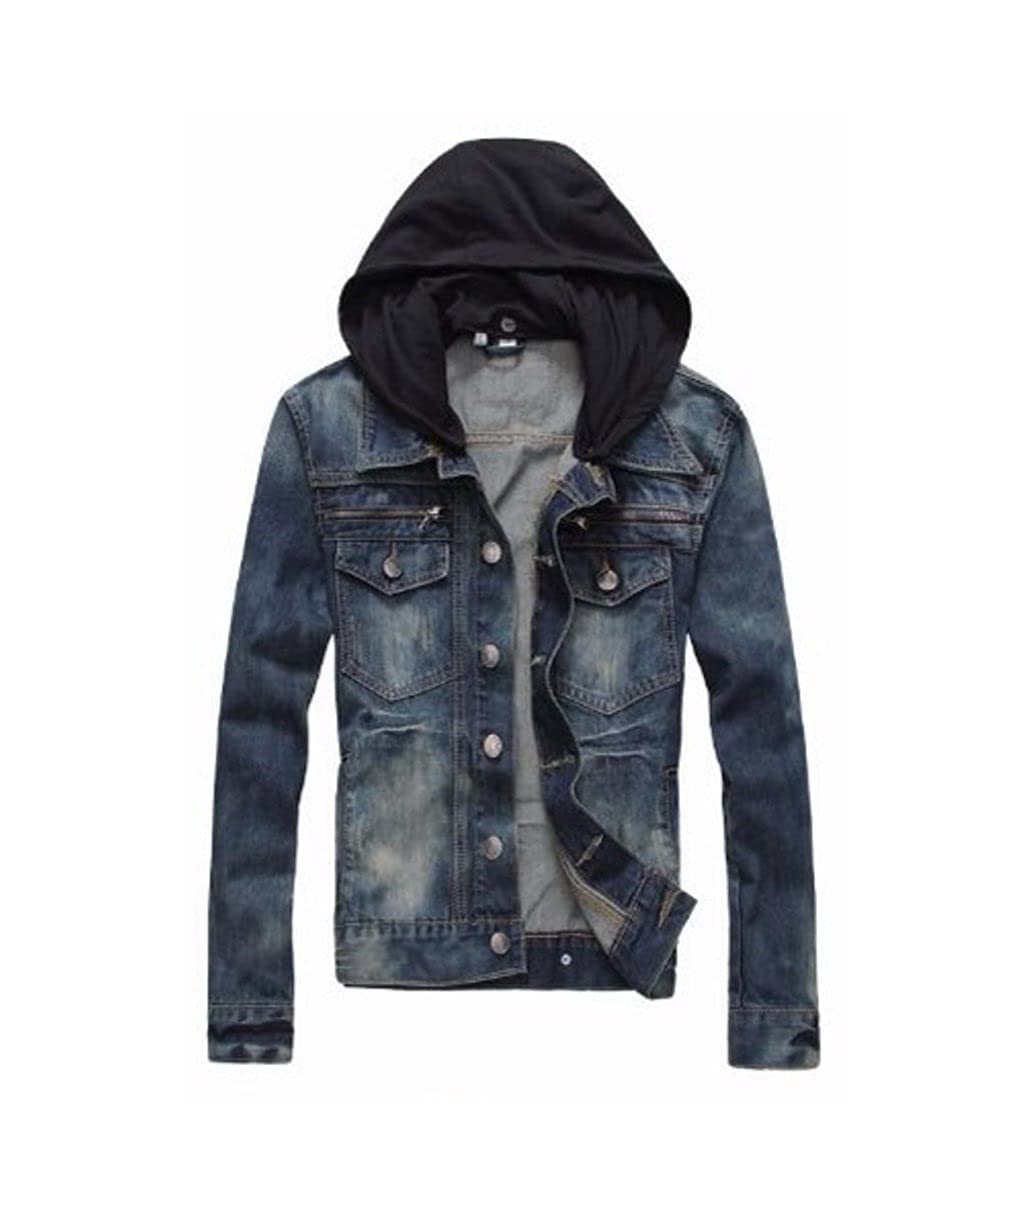 PRIME Men's Denim Jacket Slim Fit Casual Jacket DJBH-01